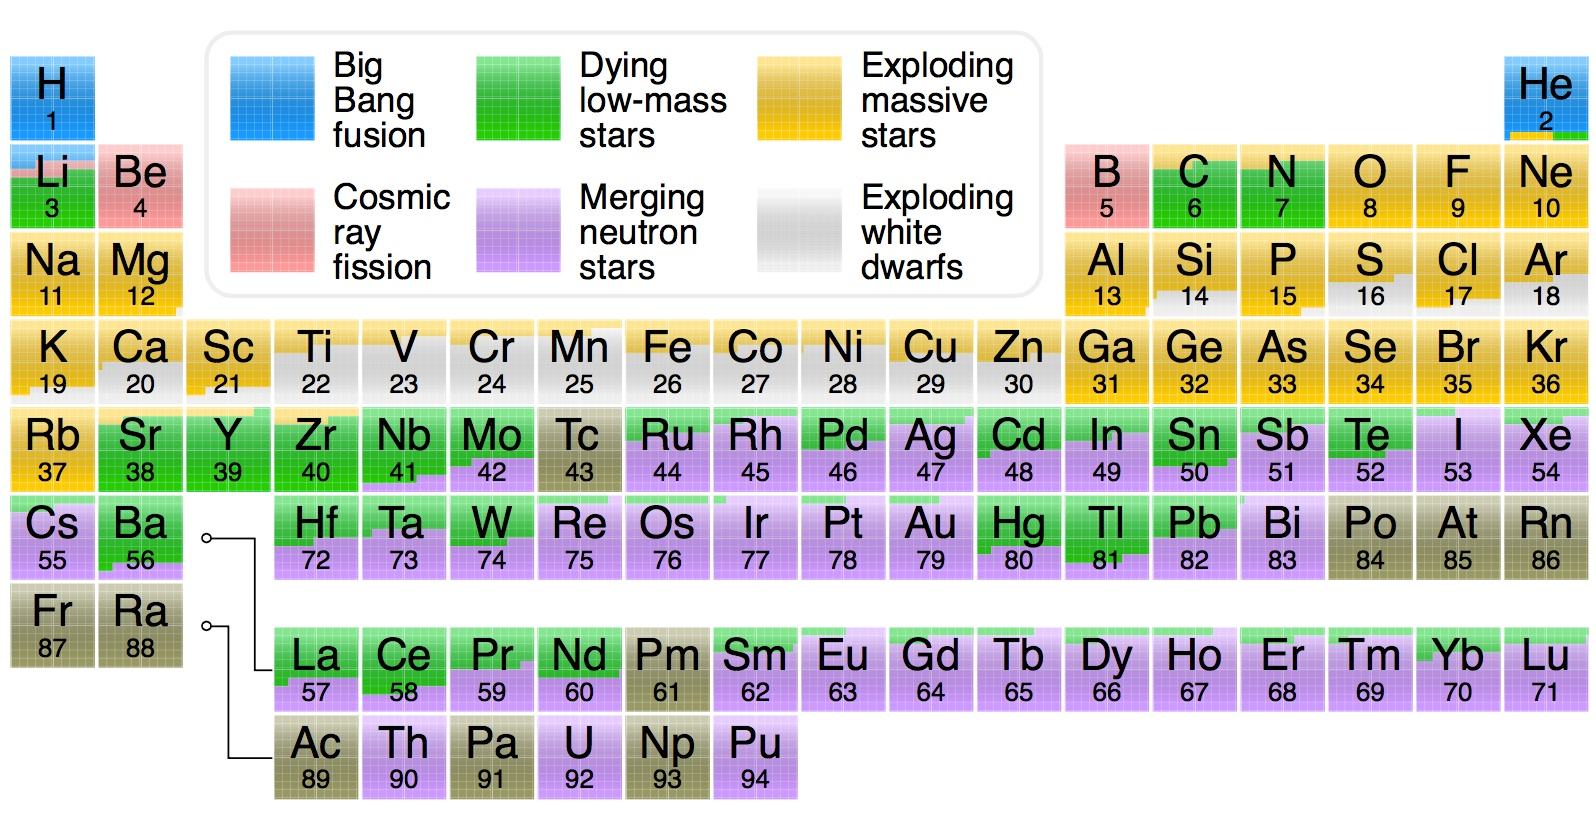 nucleosynthesis periodic table by Cmglee wikipaedia